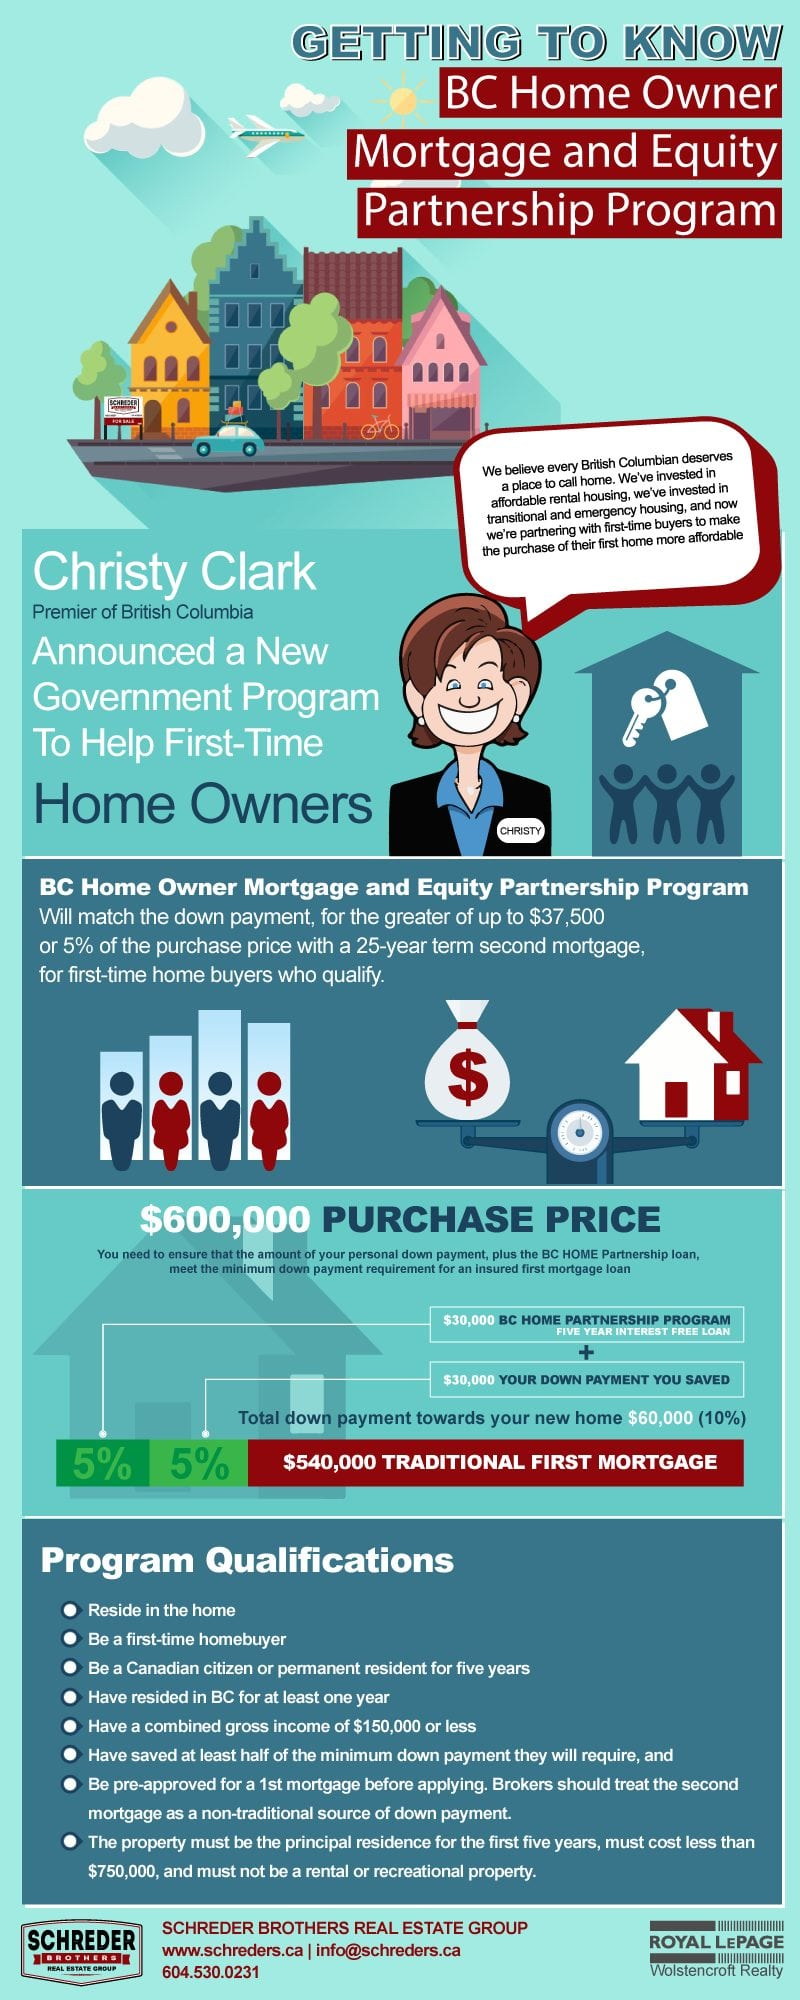 Schreder-Brothers-Real-Estate-Group-BC-Home-Owner-Mortgage-and-Equity-Partnership-Program-Infographic-005